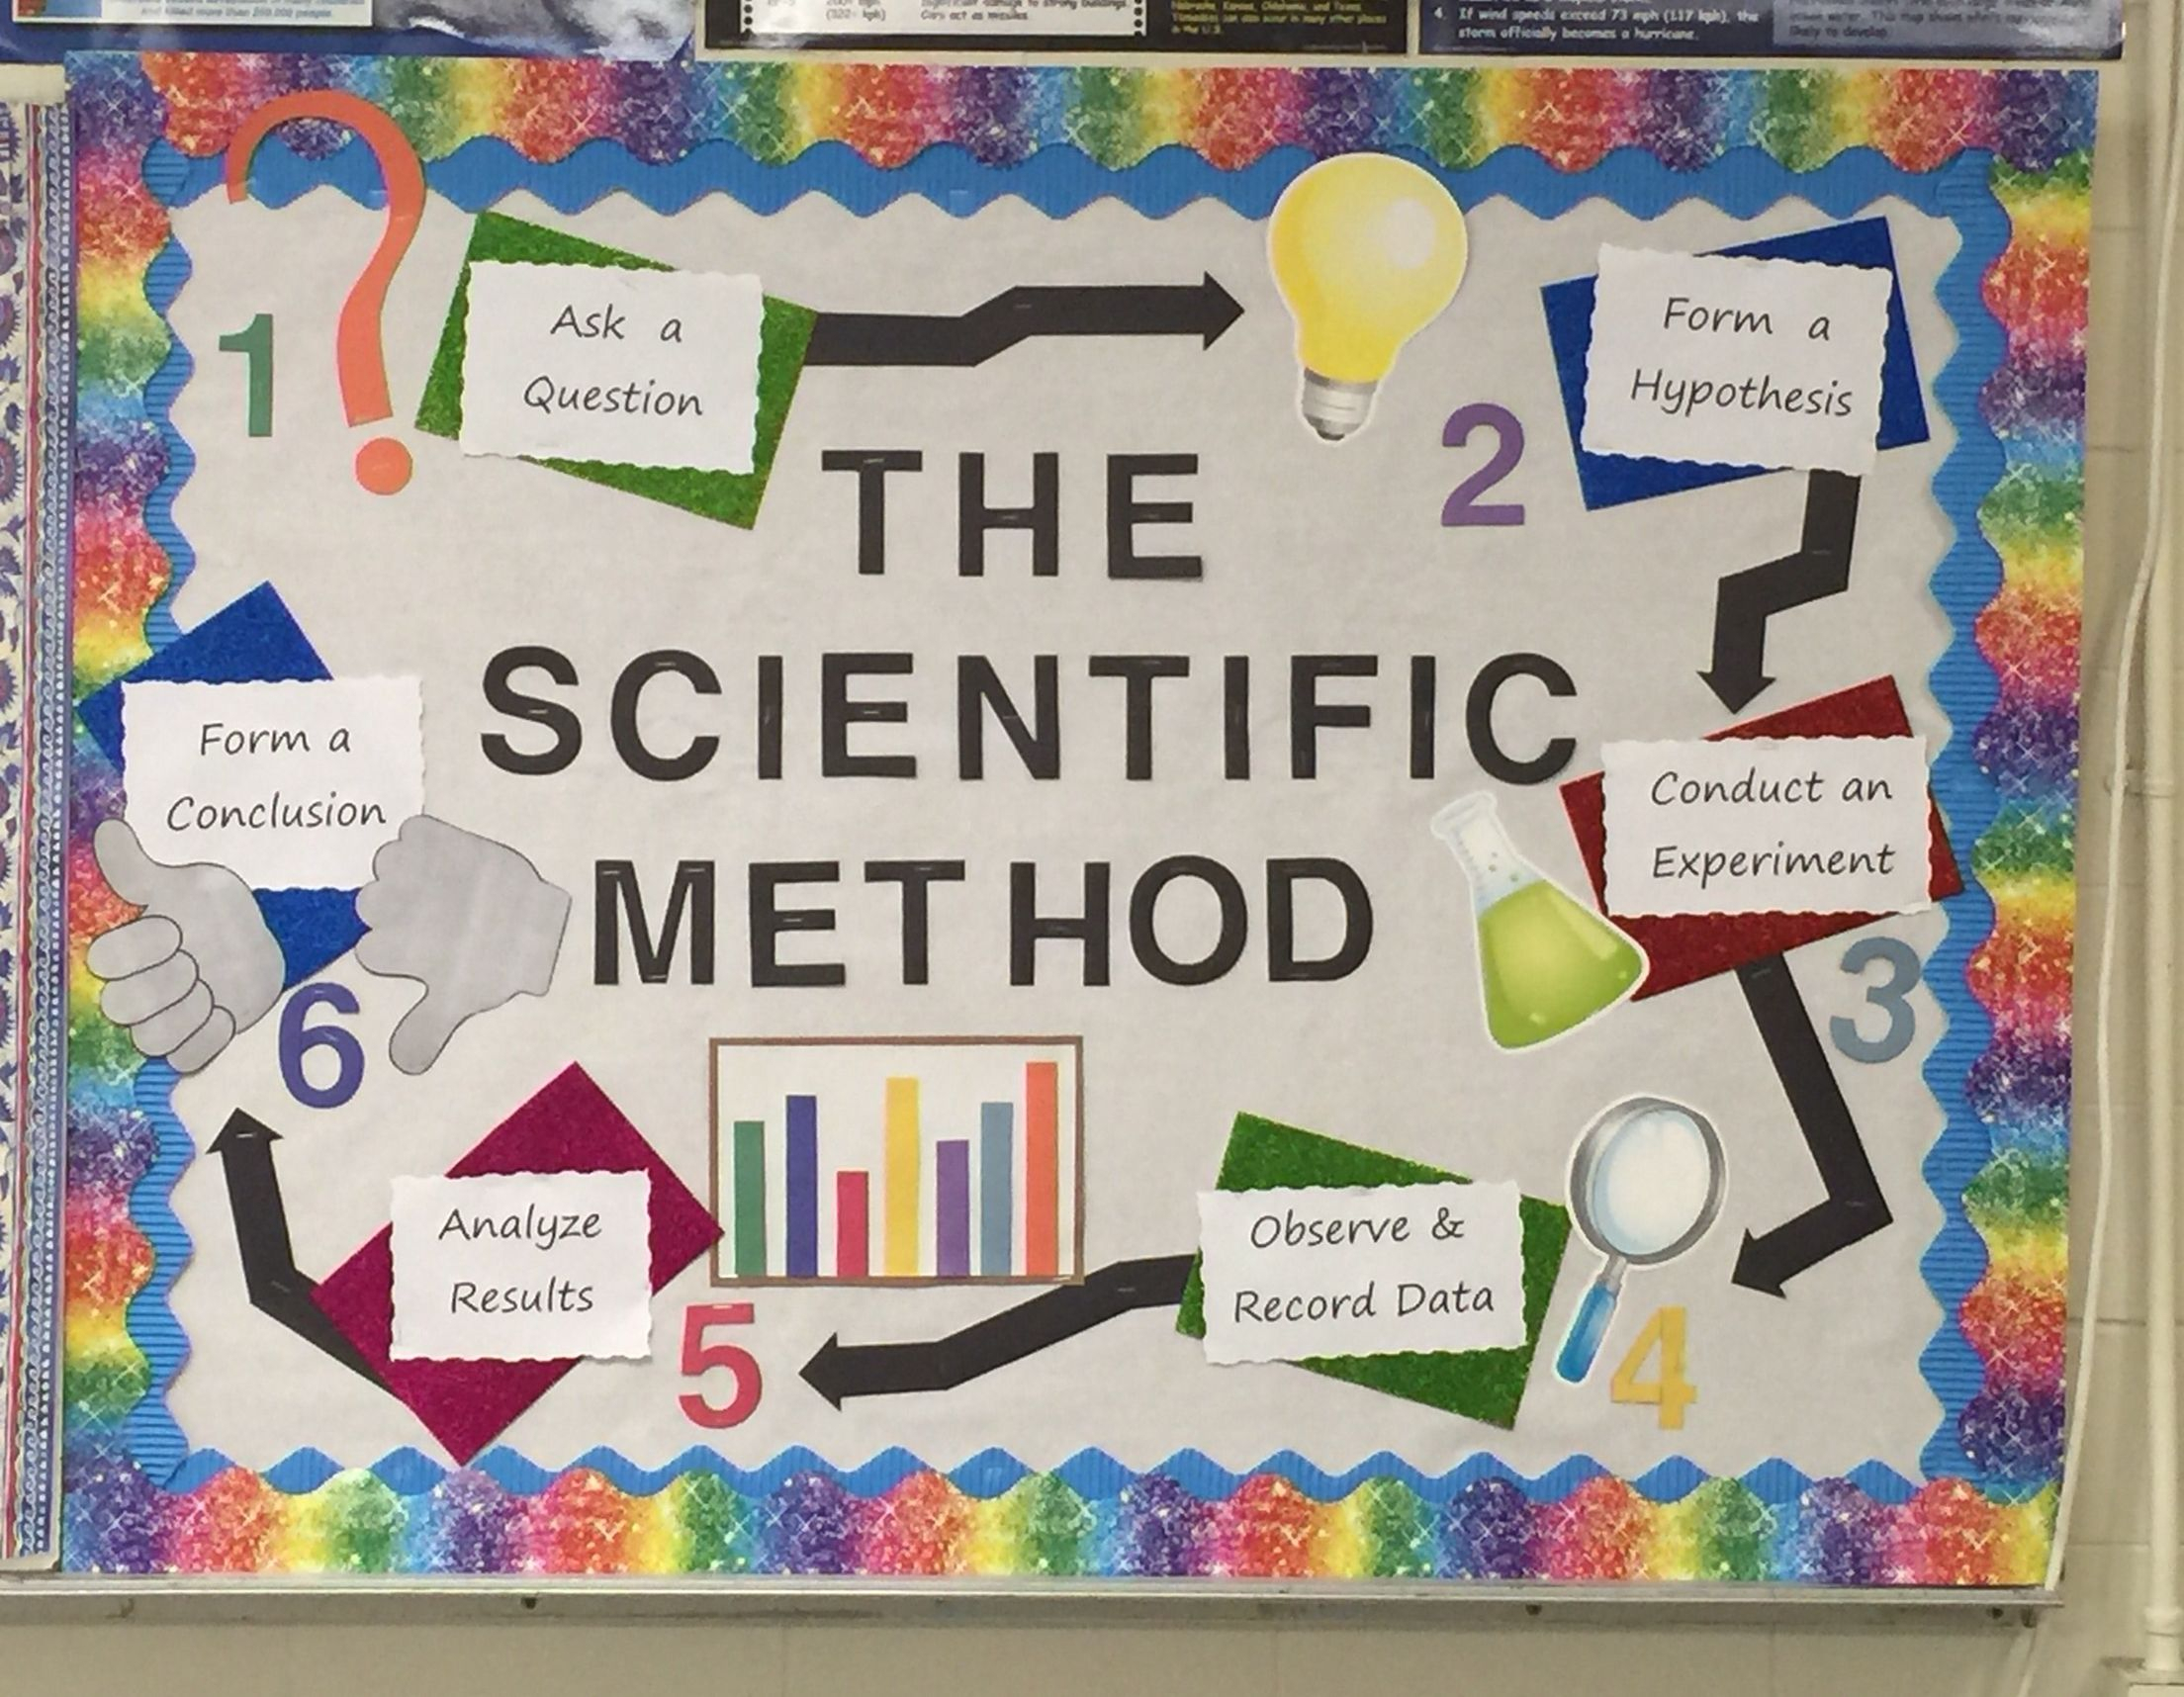 10 Nice Science Ideas For 8Th Graders bulletin board i made for mrs berrys 5th grade science class 2021